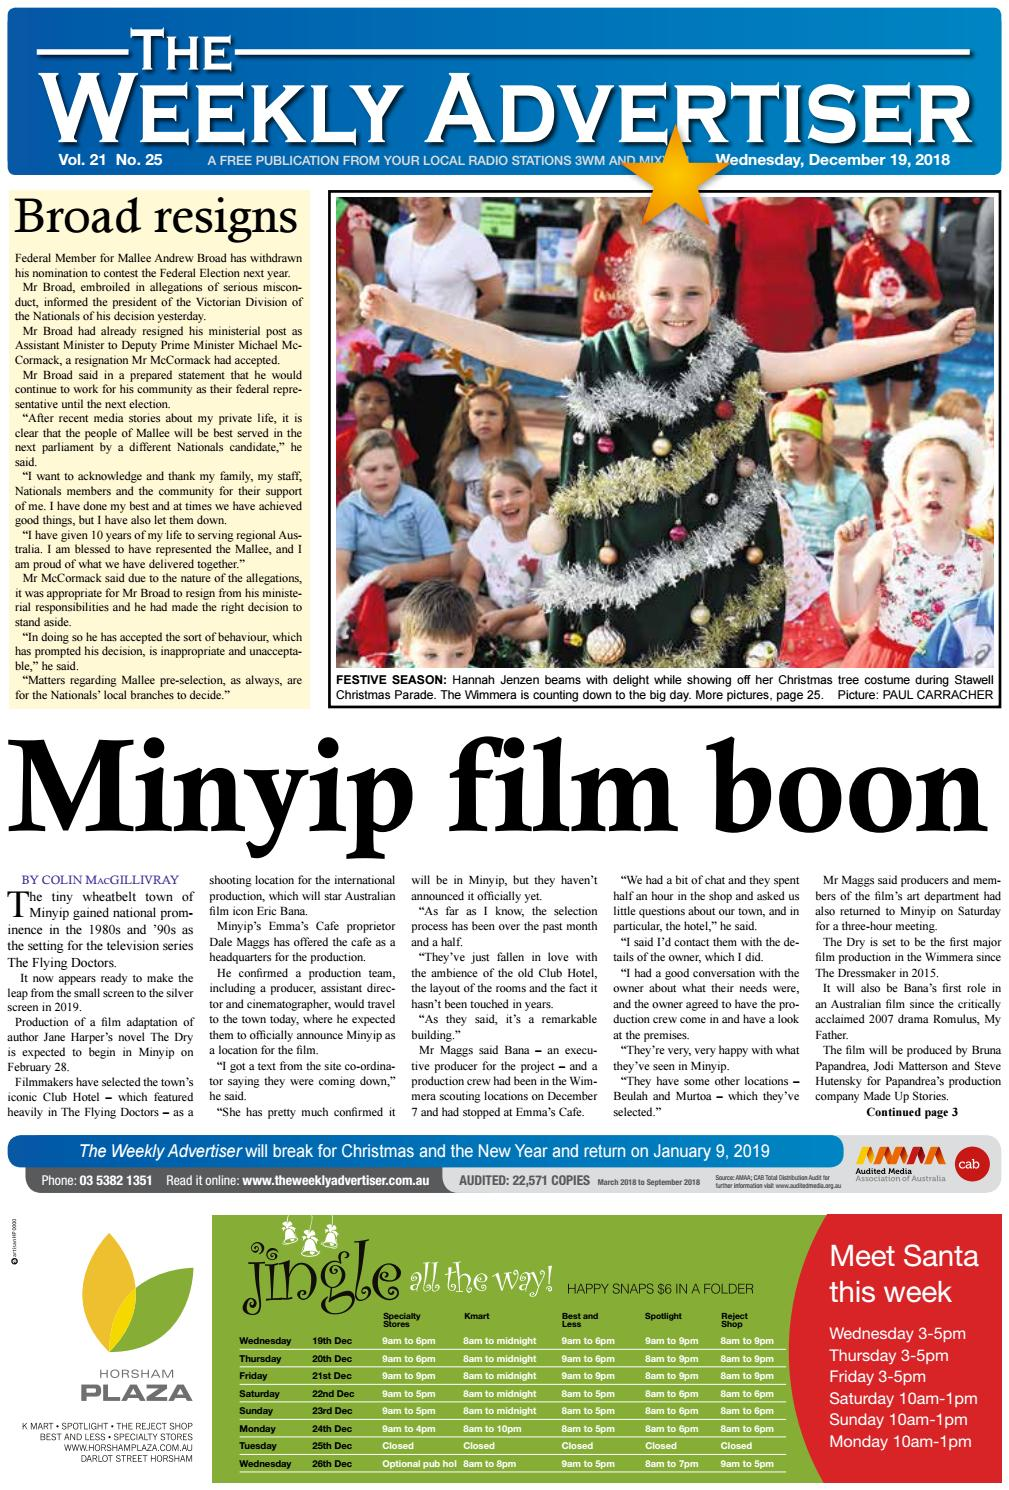 b47f1acd1 The Weekly Advertiser - Wednesday